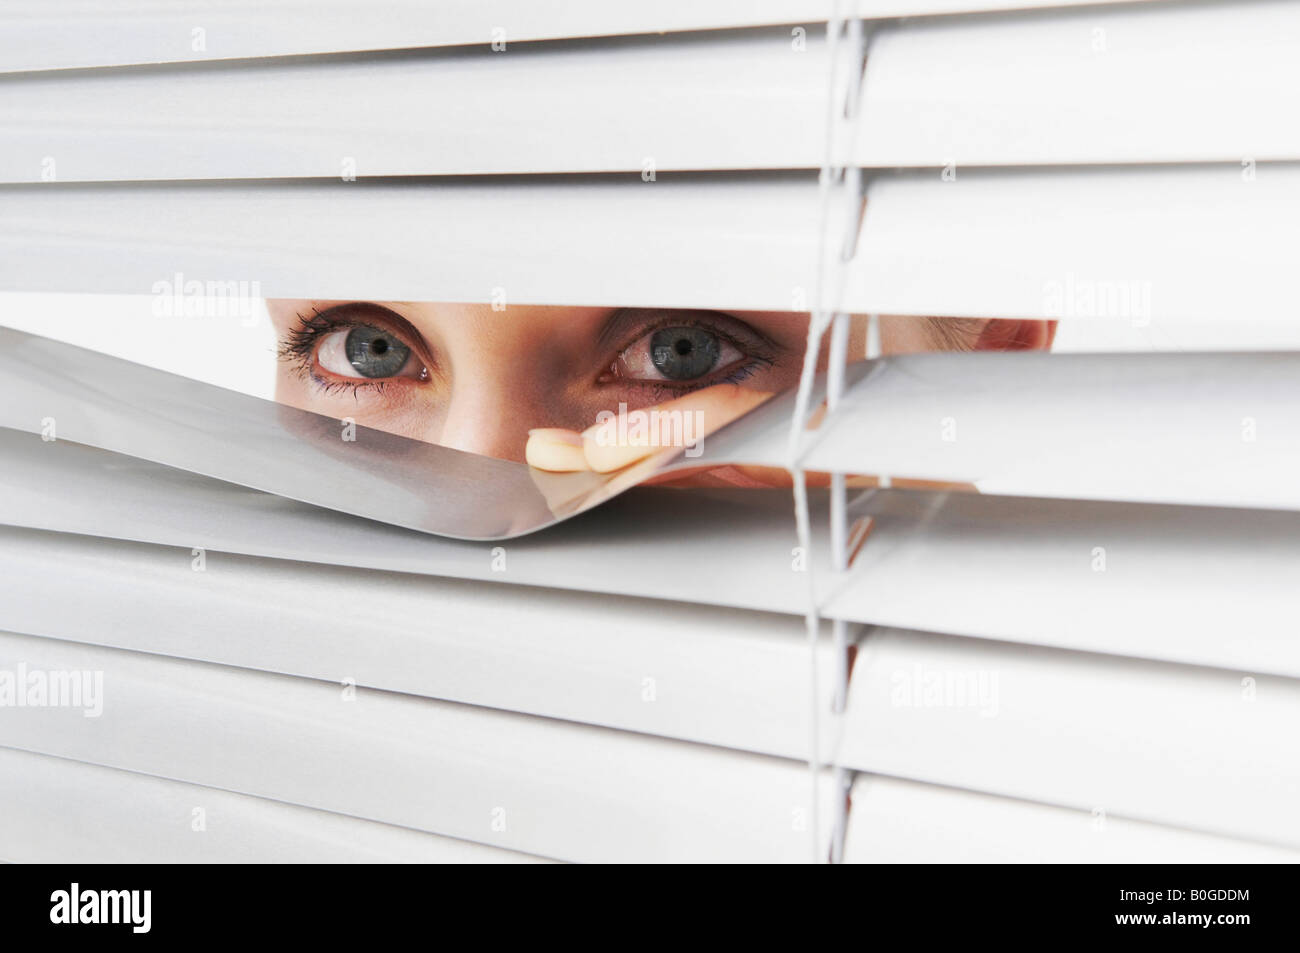 Woman looks through blinds - Stock Image